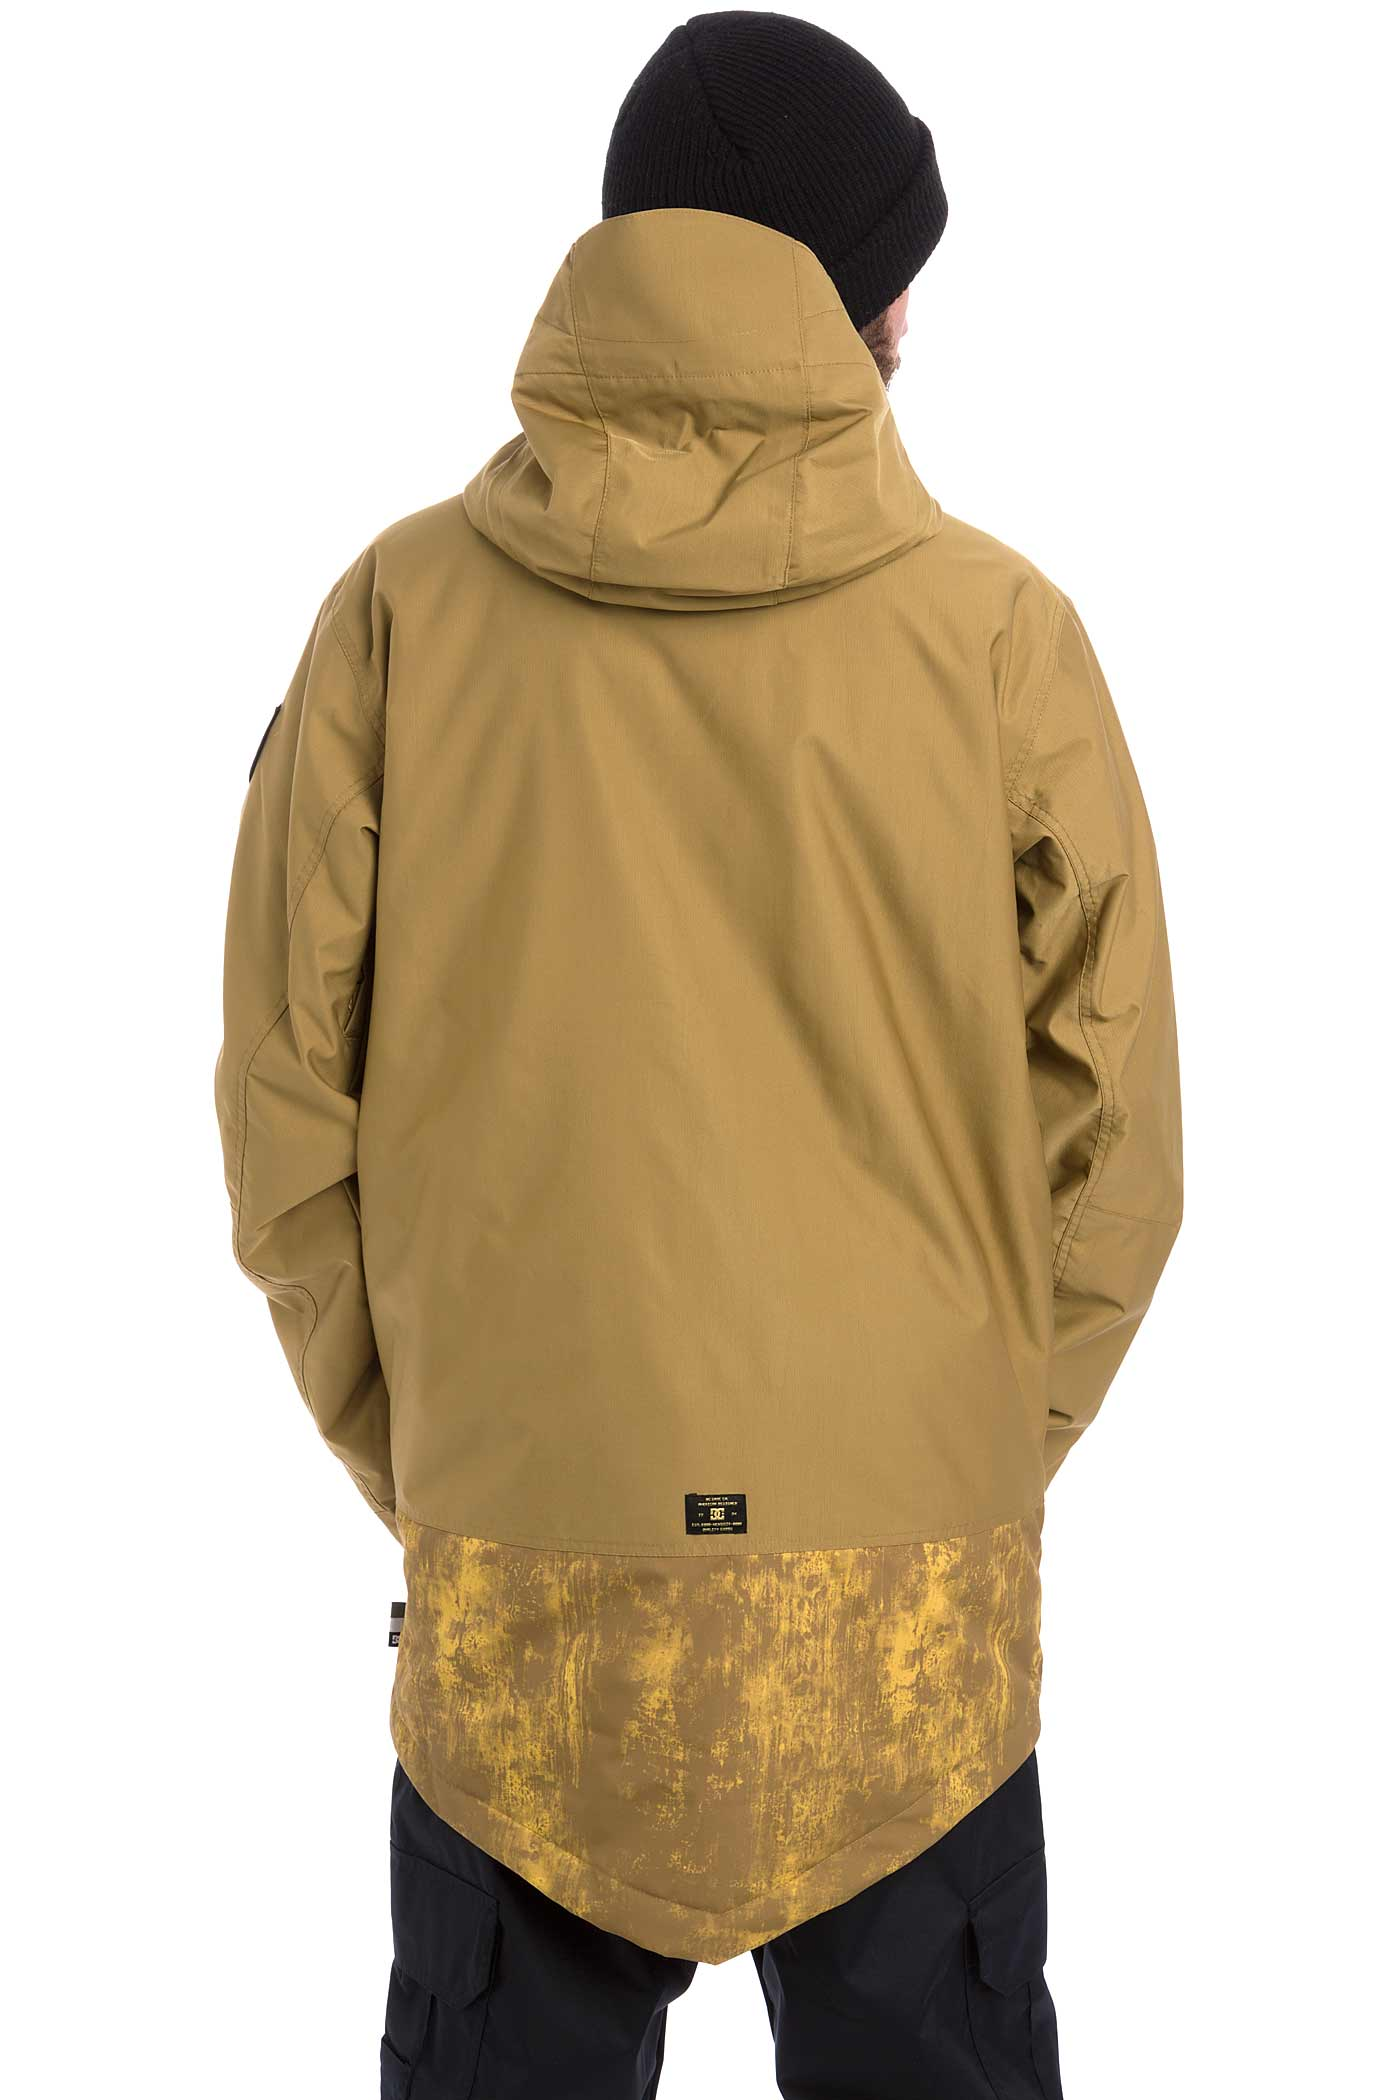 What snowboard jacket to buy